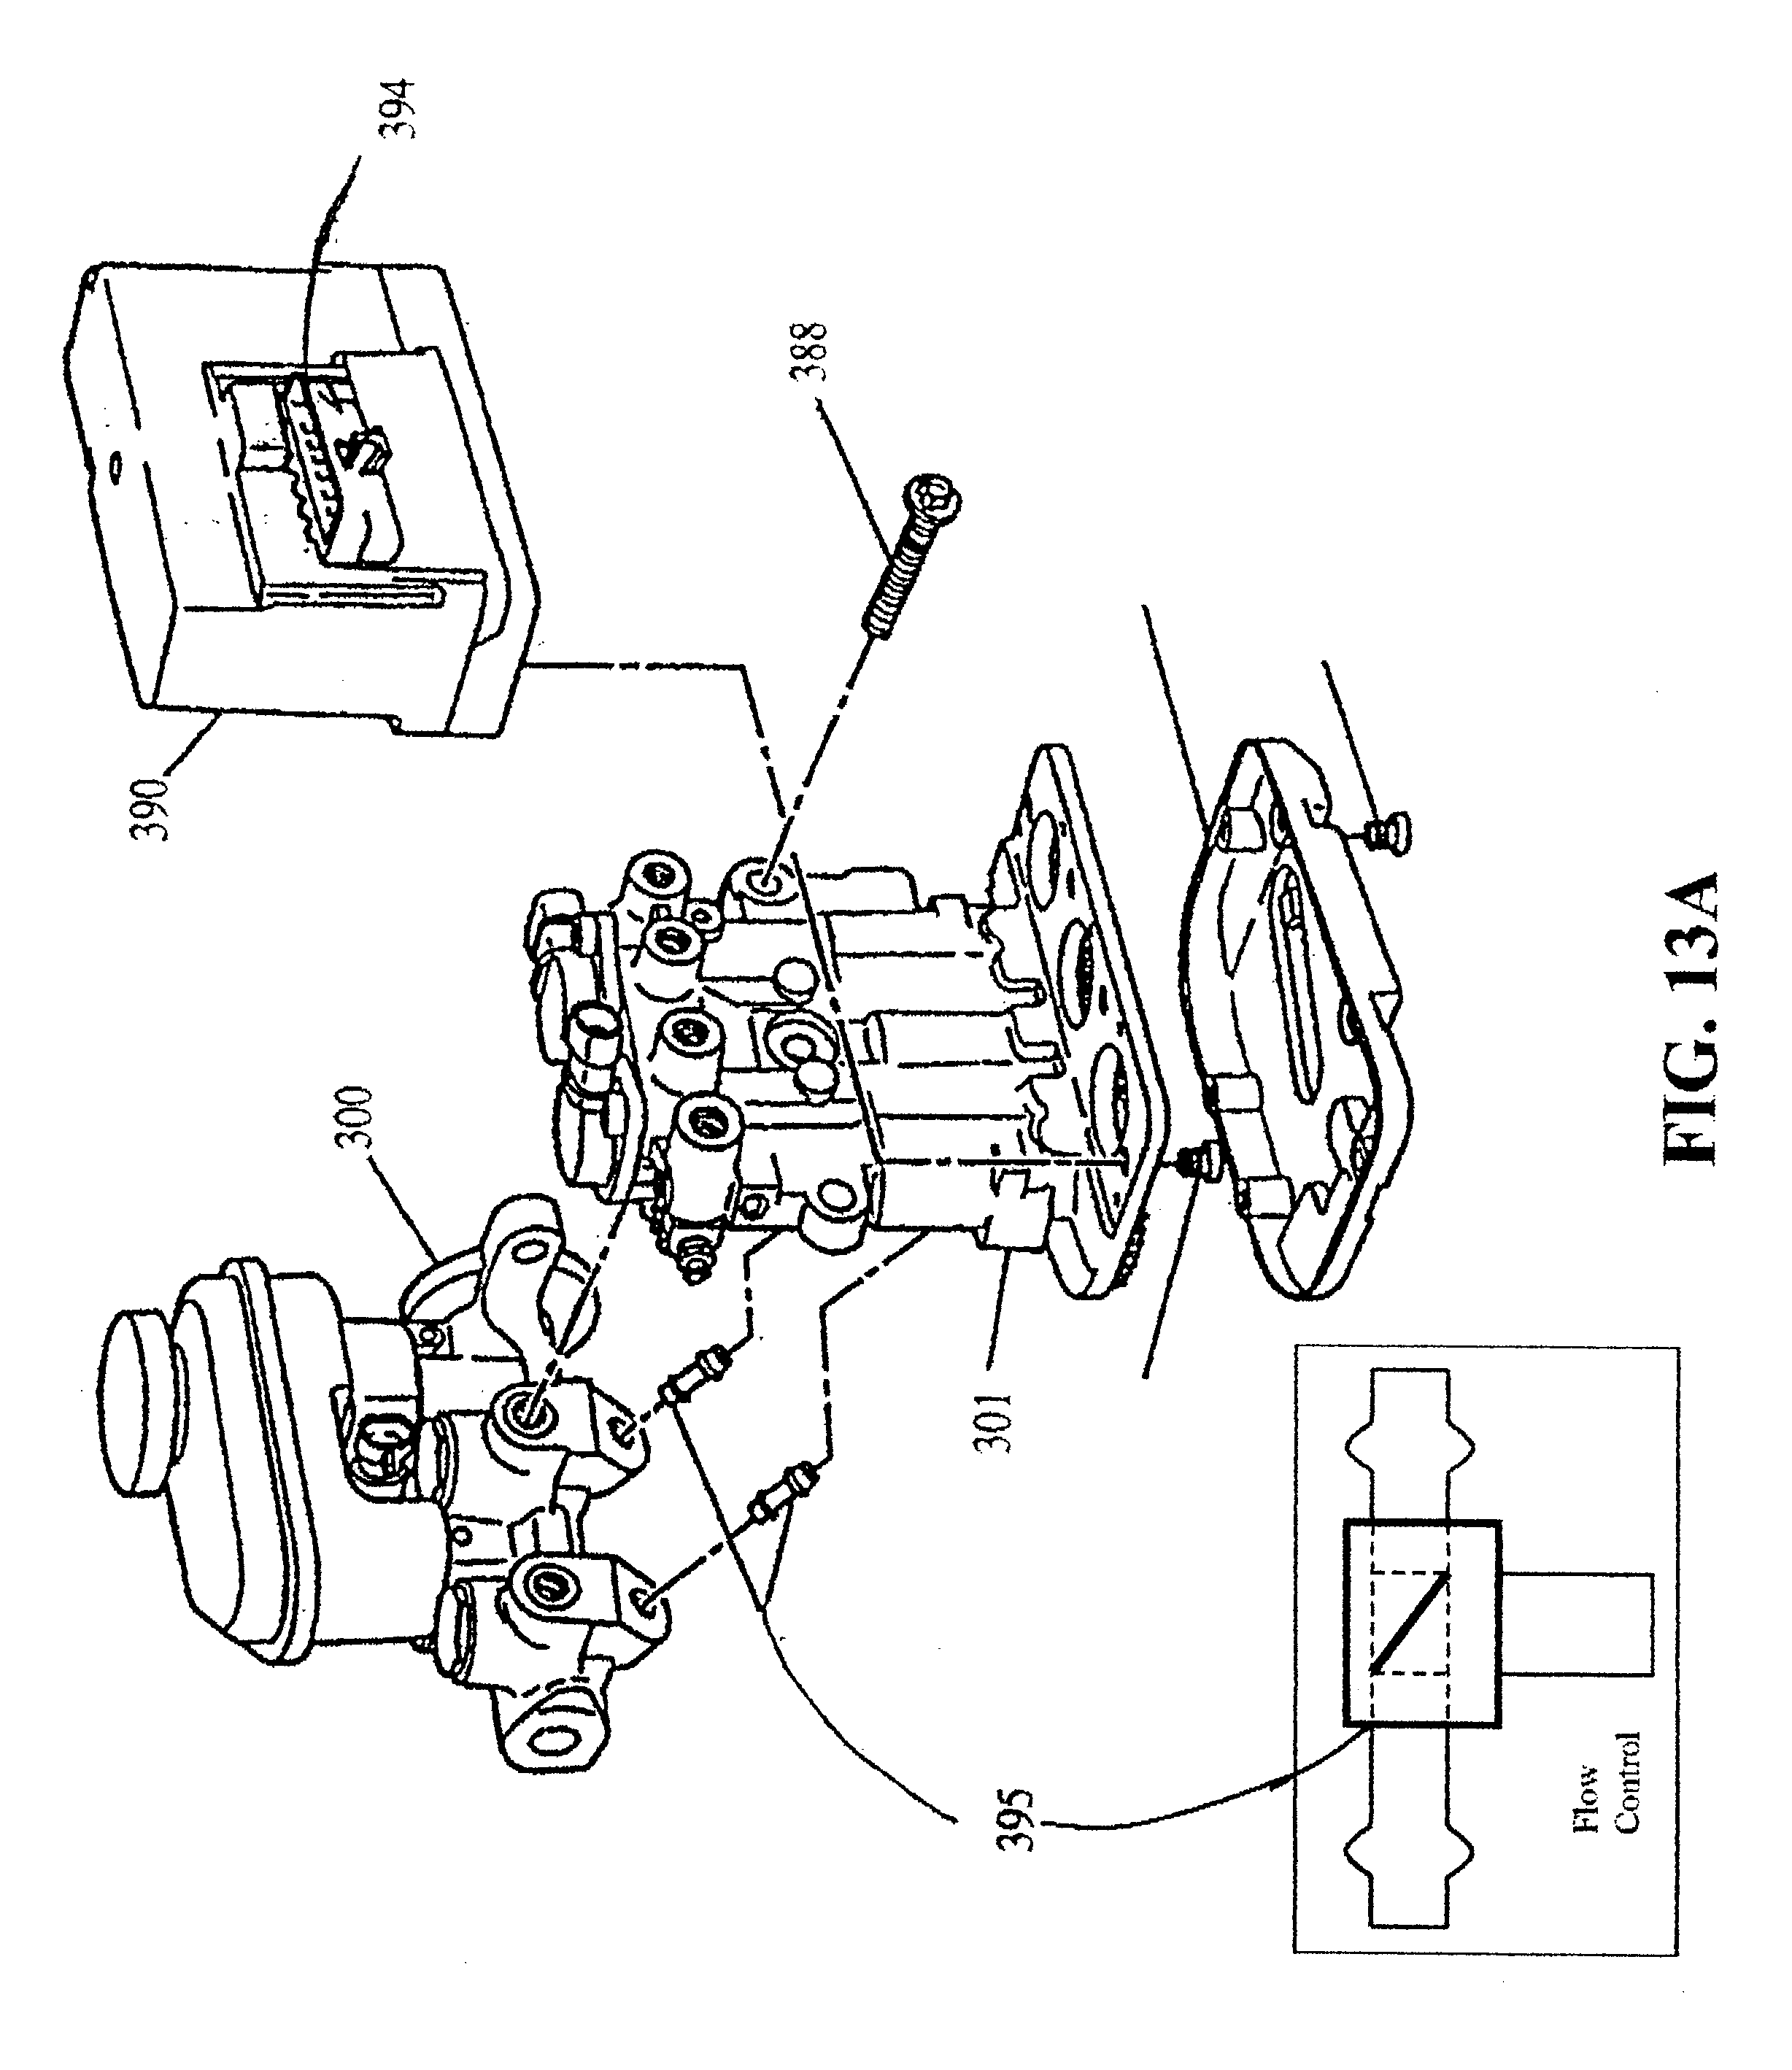 patent us6647328 electrically controlled automated devices to equipment and machinery